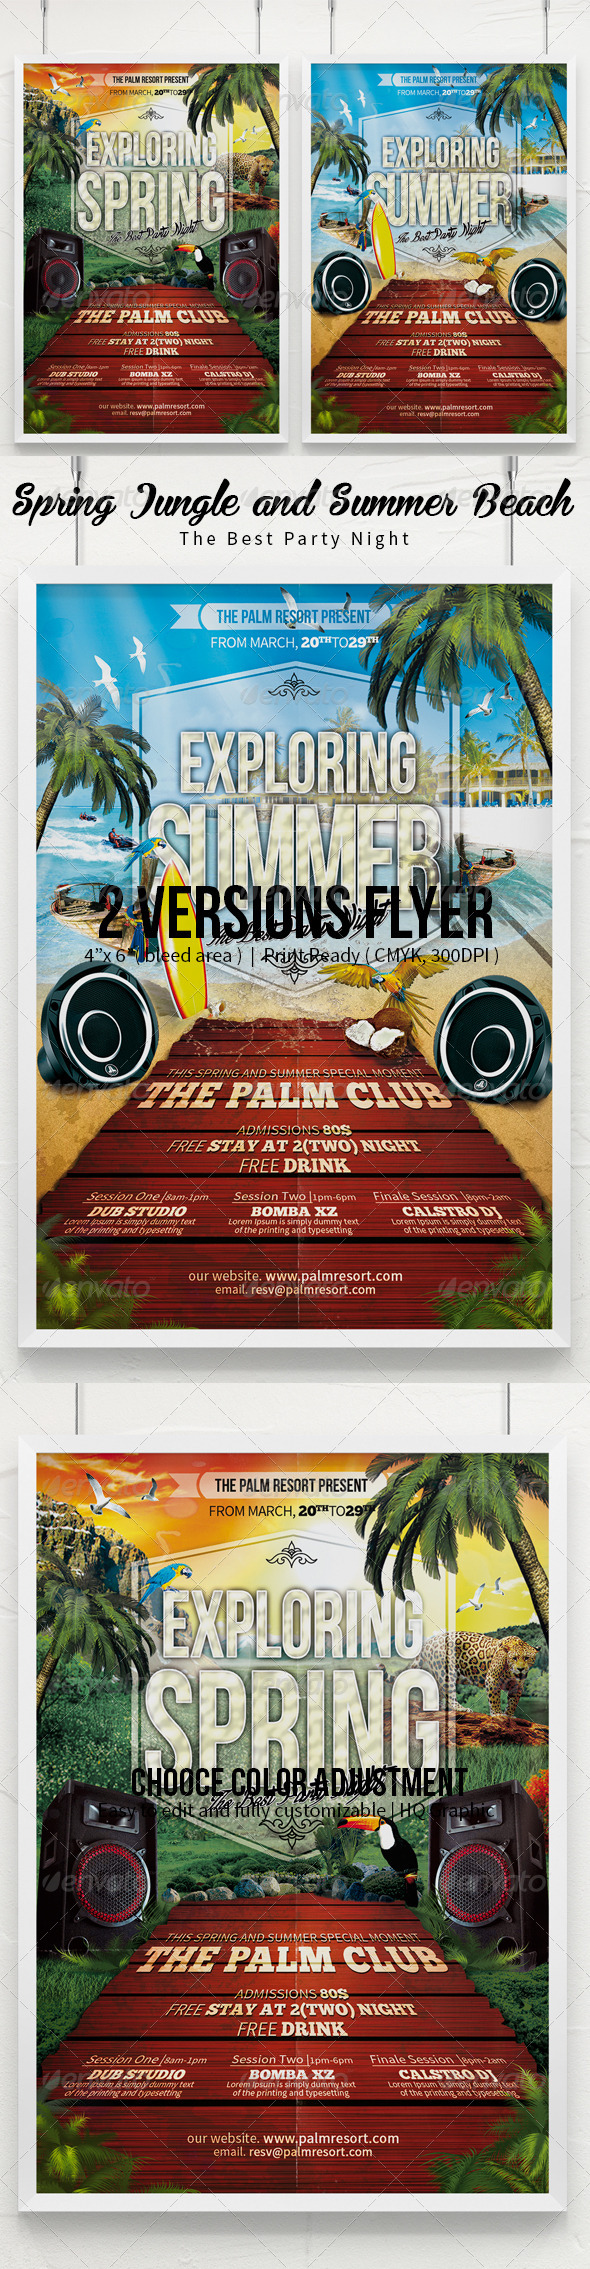 GraphicRiver Exploring Spring Break Jungle & Summer Beach Flyer 7454059